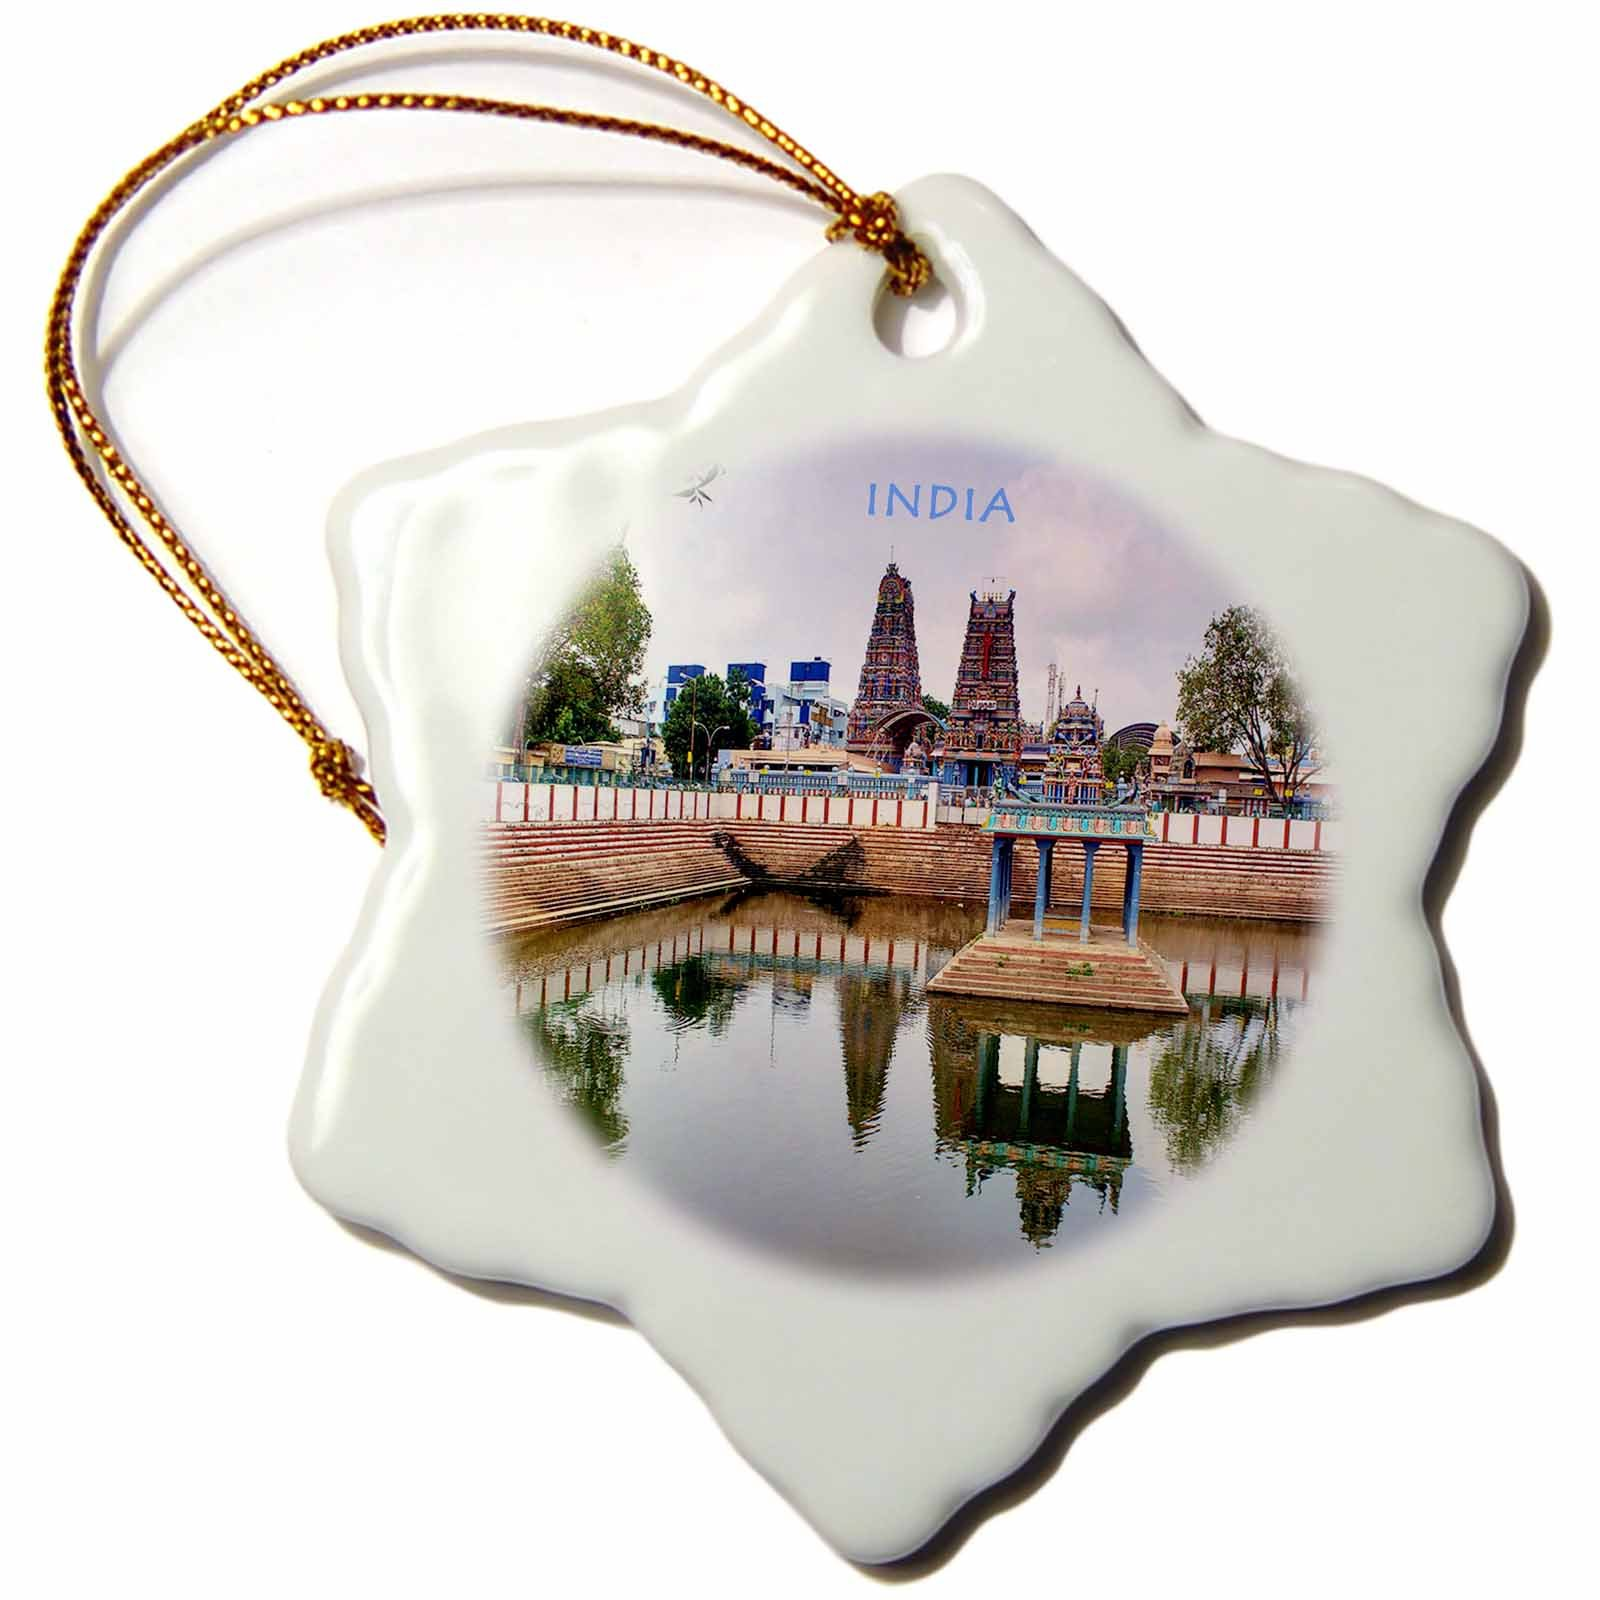 3dRose orn_80276_1 Hindu Temple in India-Snowflake Ornament, Porcelain, 3-Inch